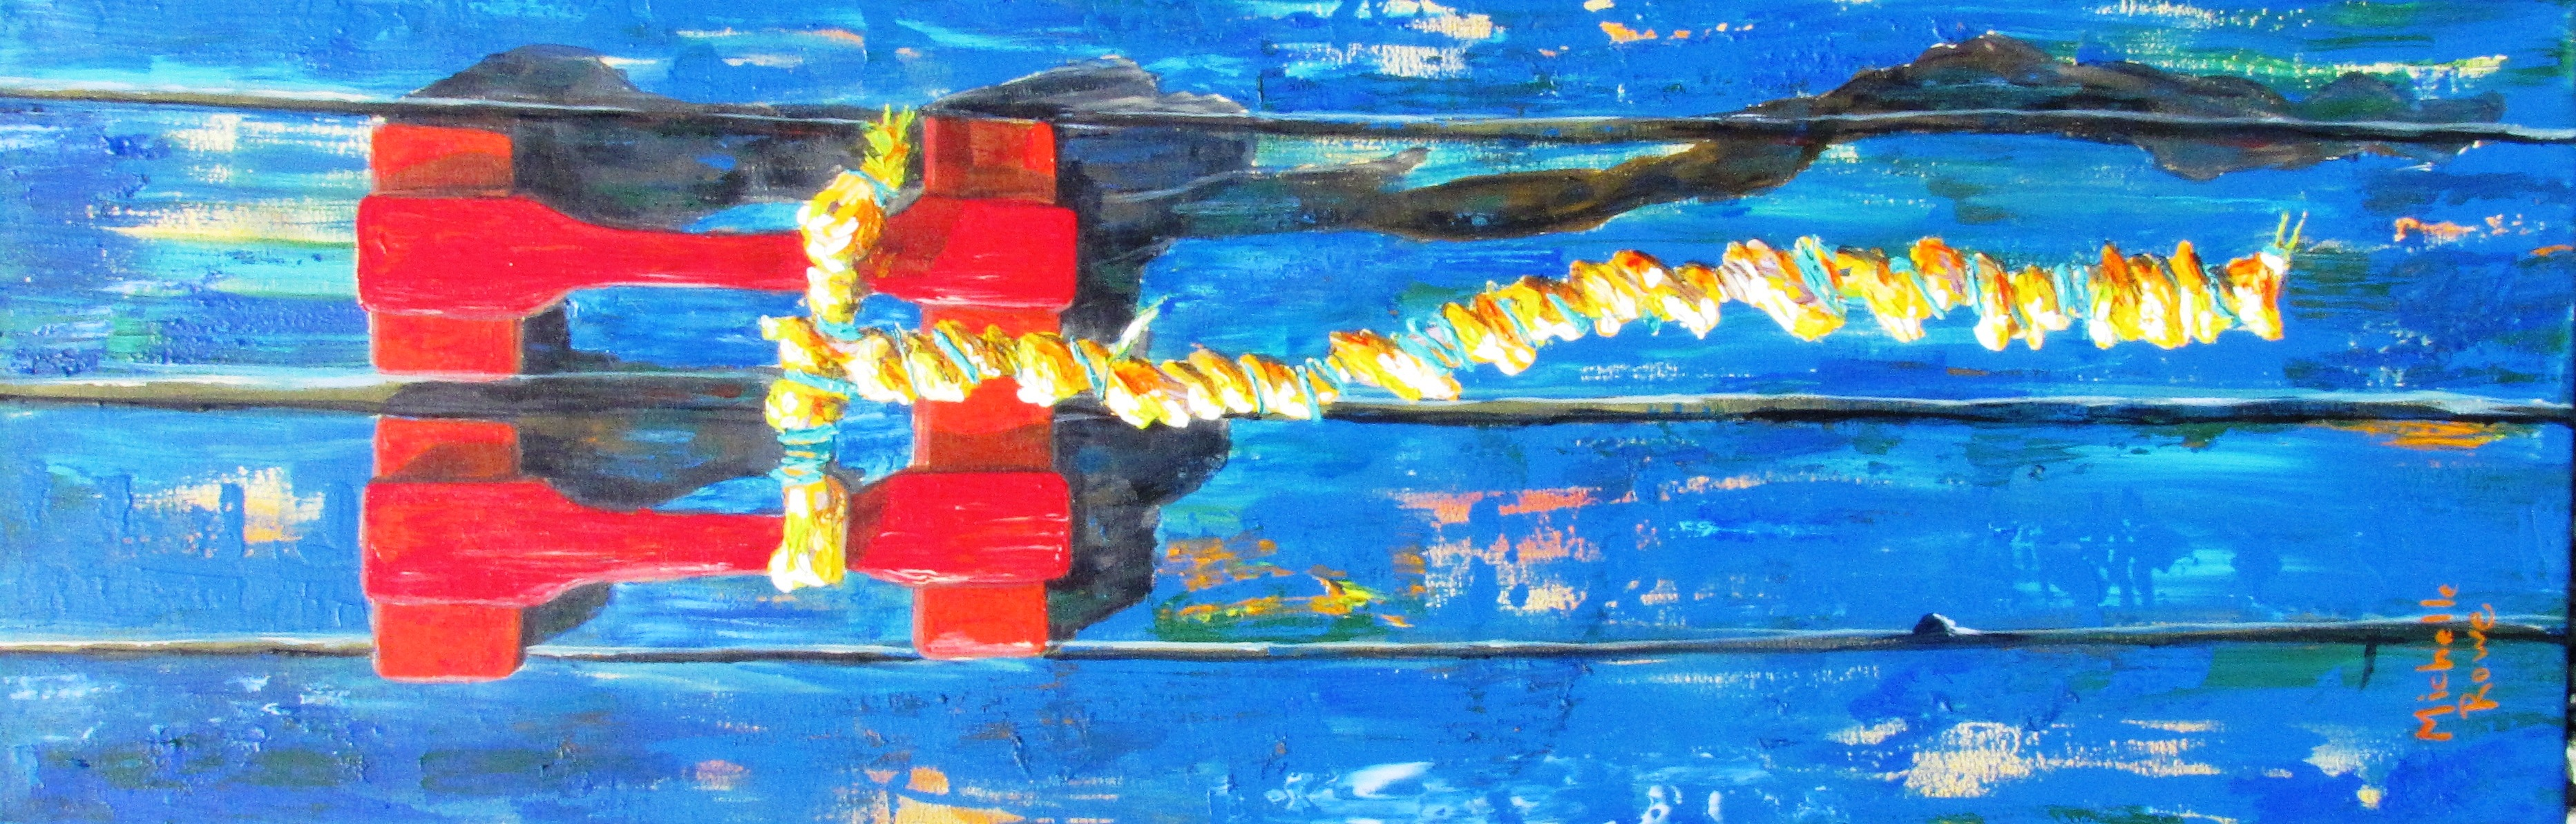 Original acrylic Painting is currently hanging at Bacalao Resturant St John's NL. For Sale.